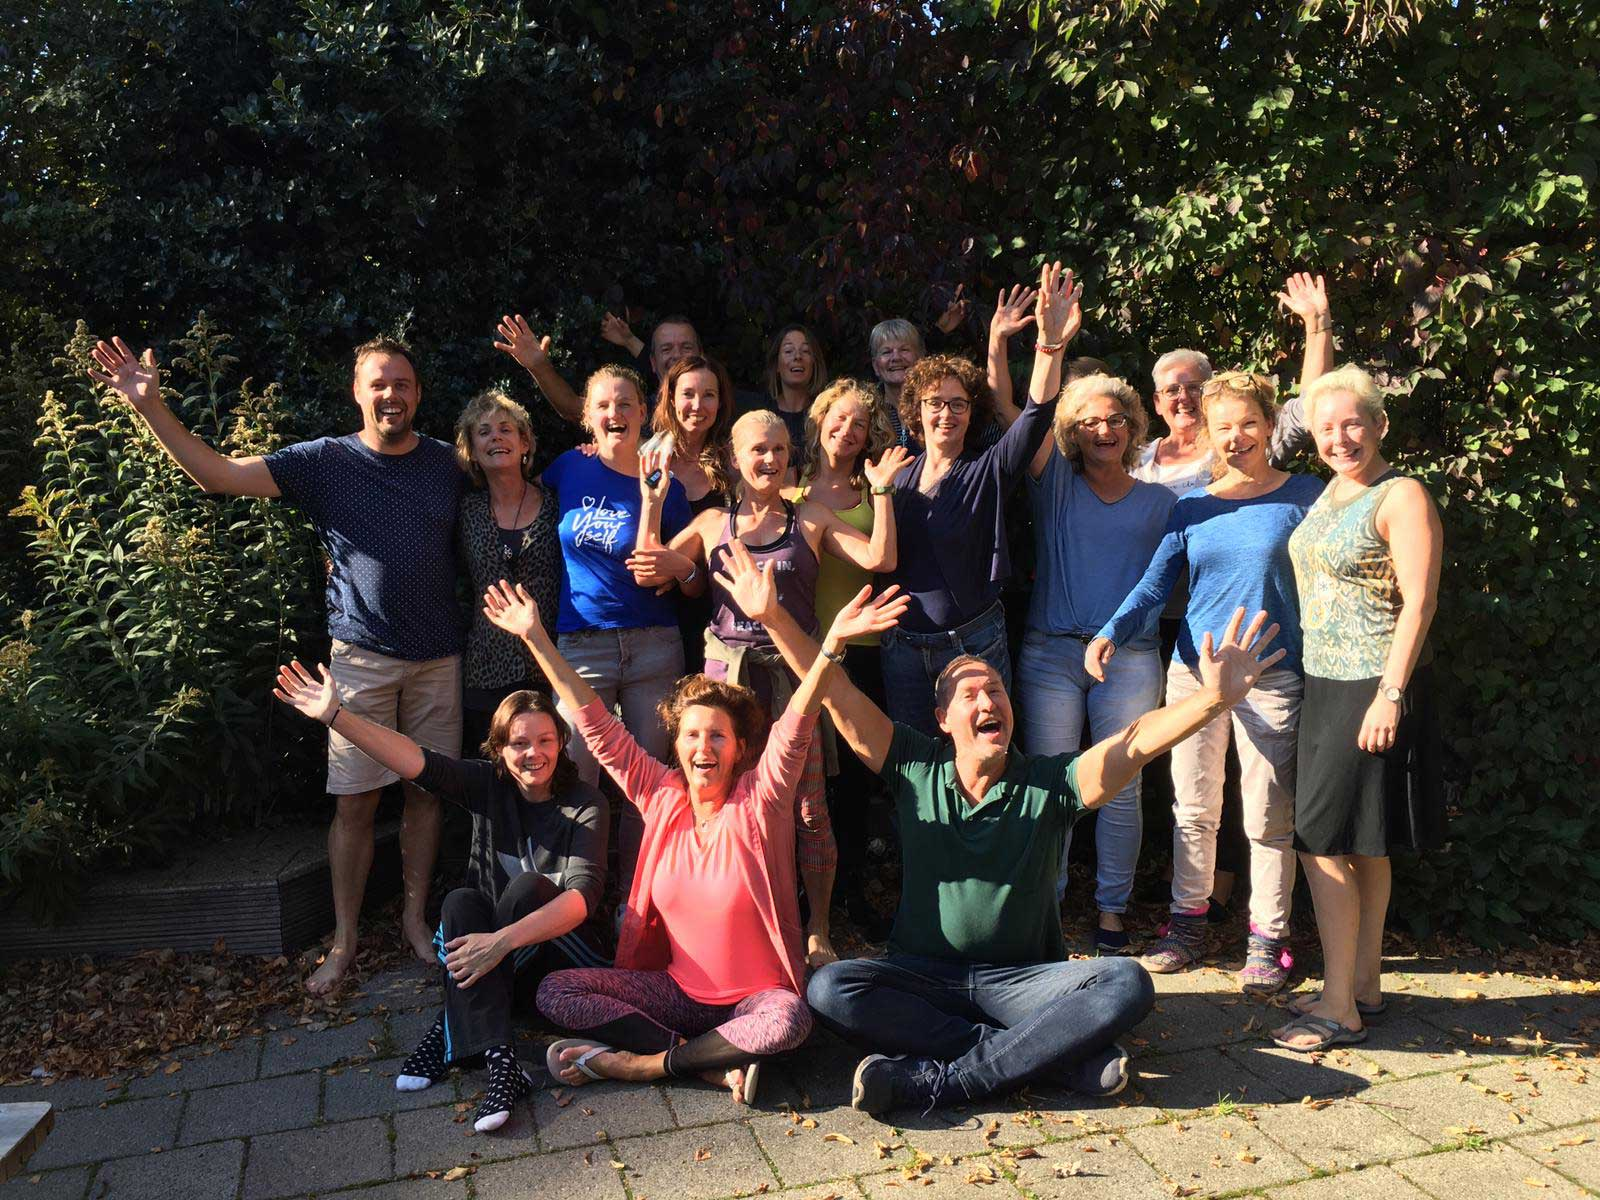 Mindfulness Retraite in Land van Nu in Groningen